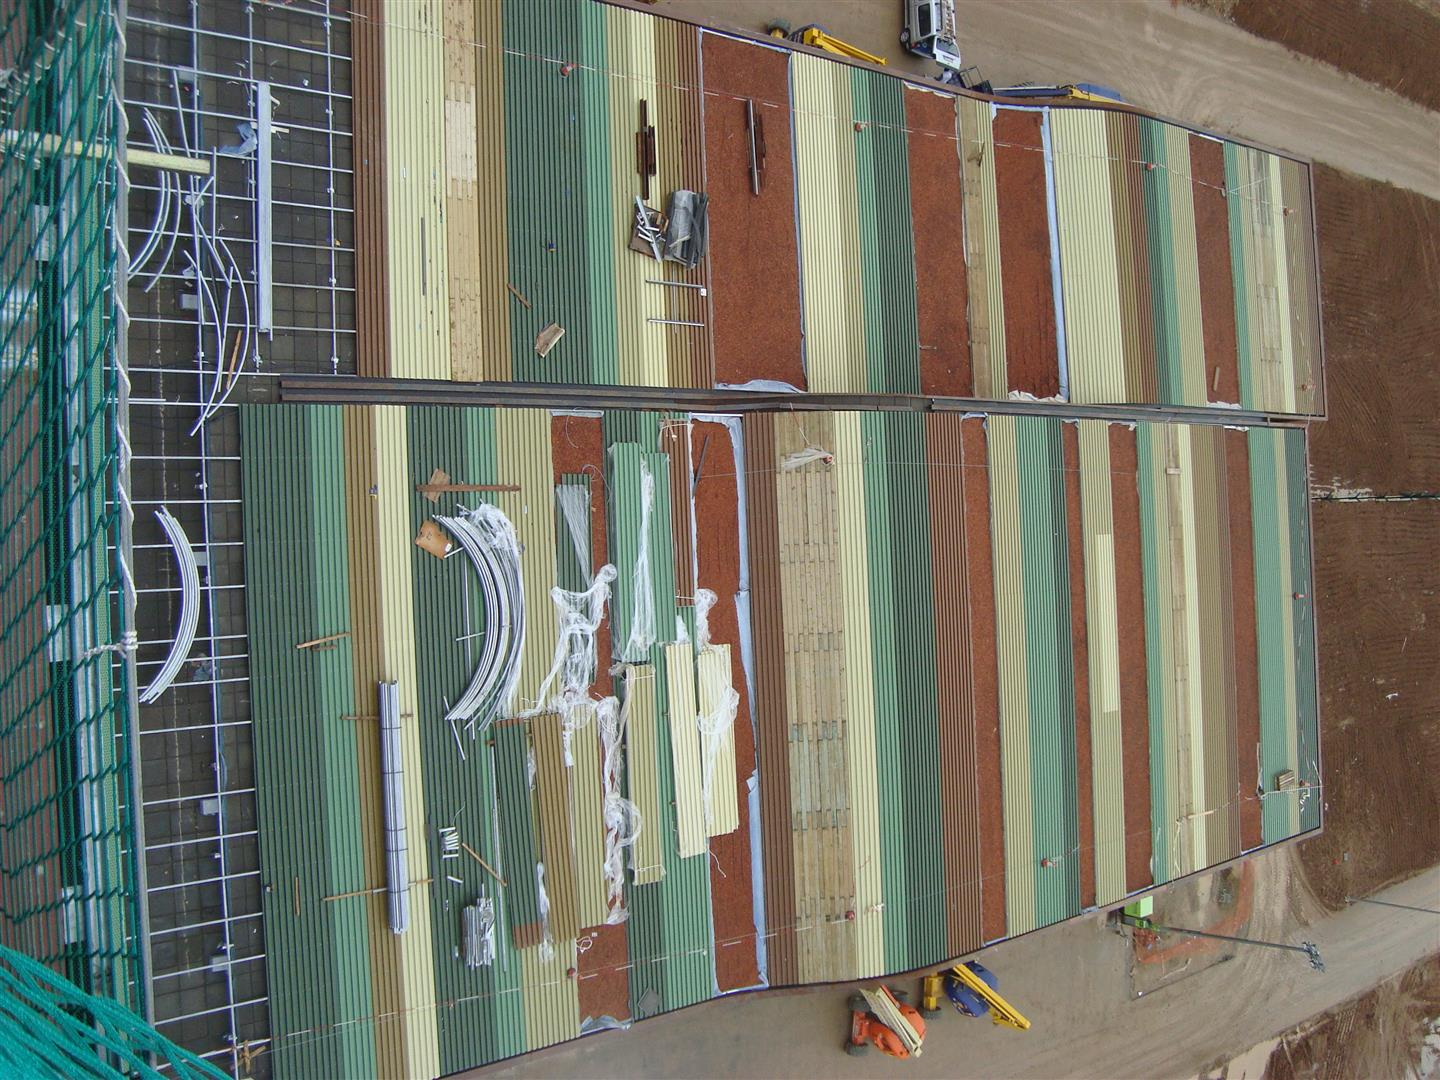 FOTOS AEROPORT 010